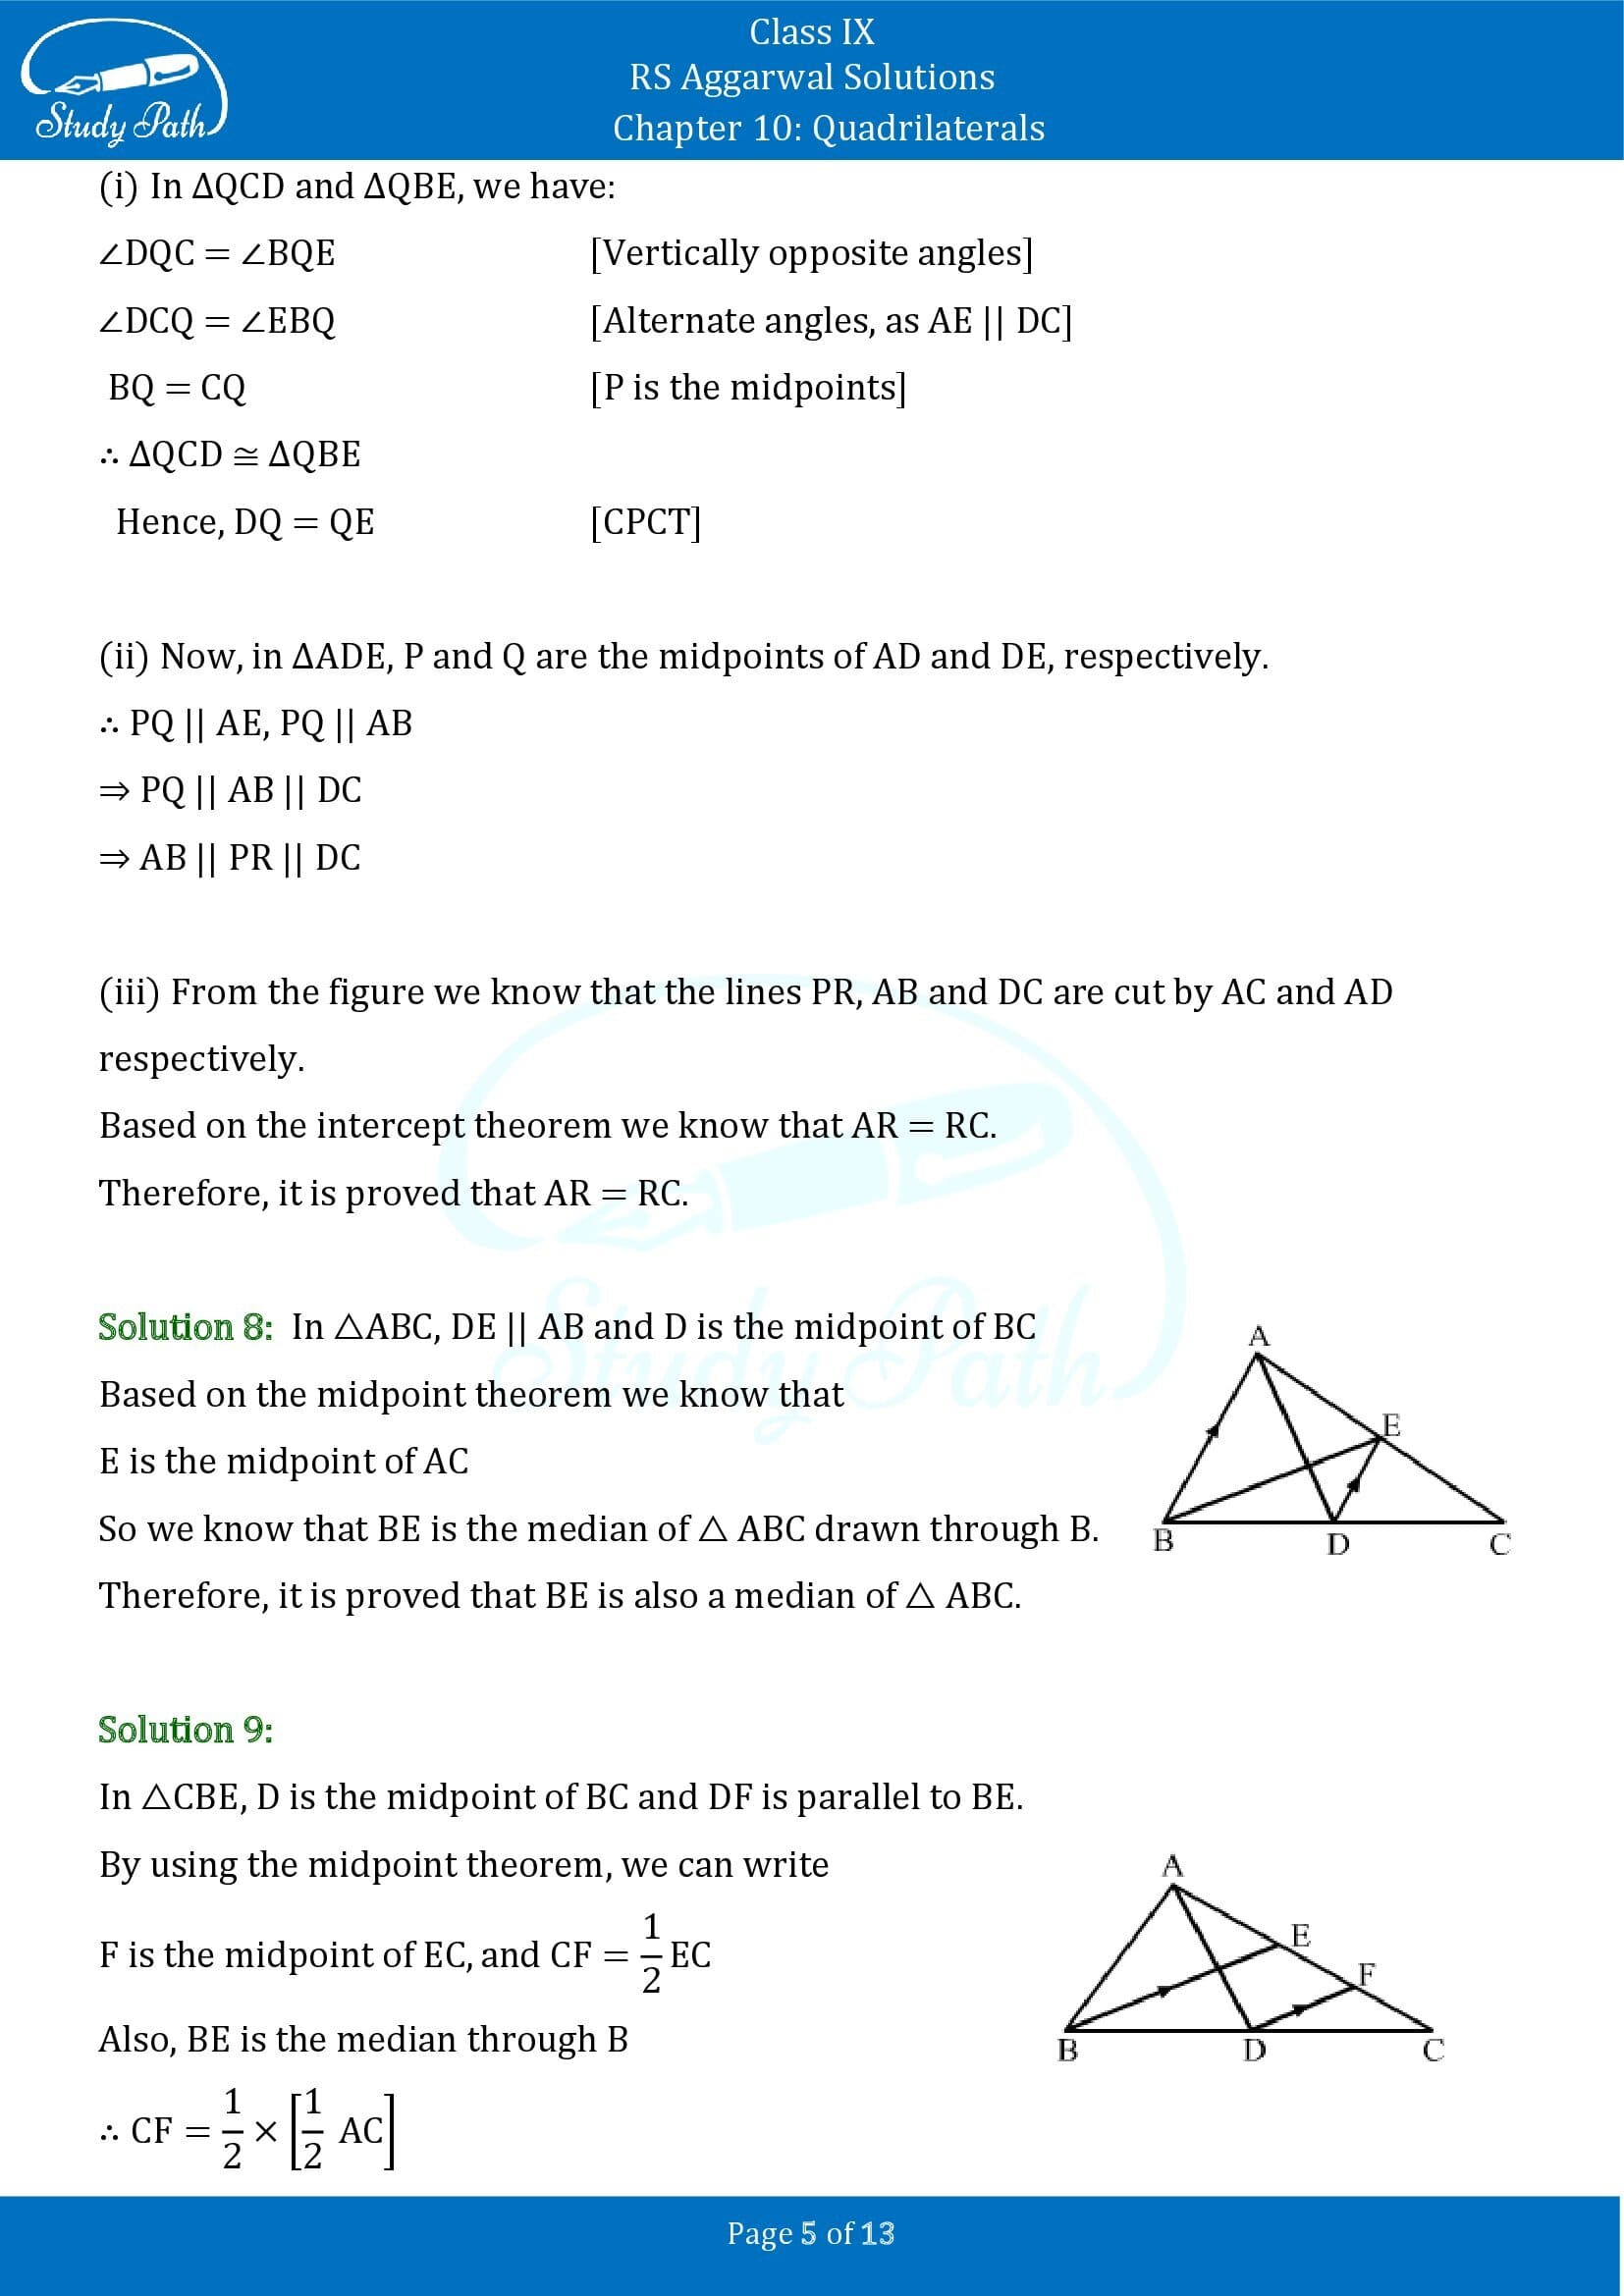 RS Aggarwal Solutions Class 9 Chapter 10 Quadrilaterals Exercise 10C 00005